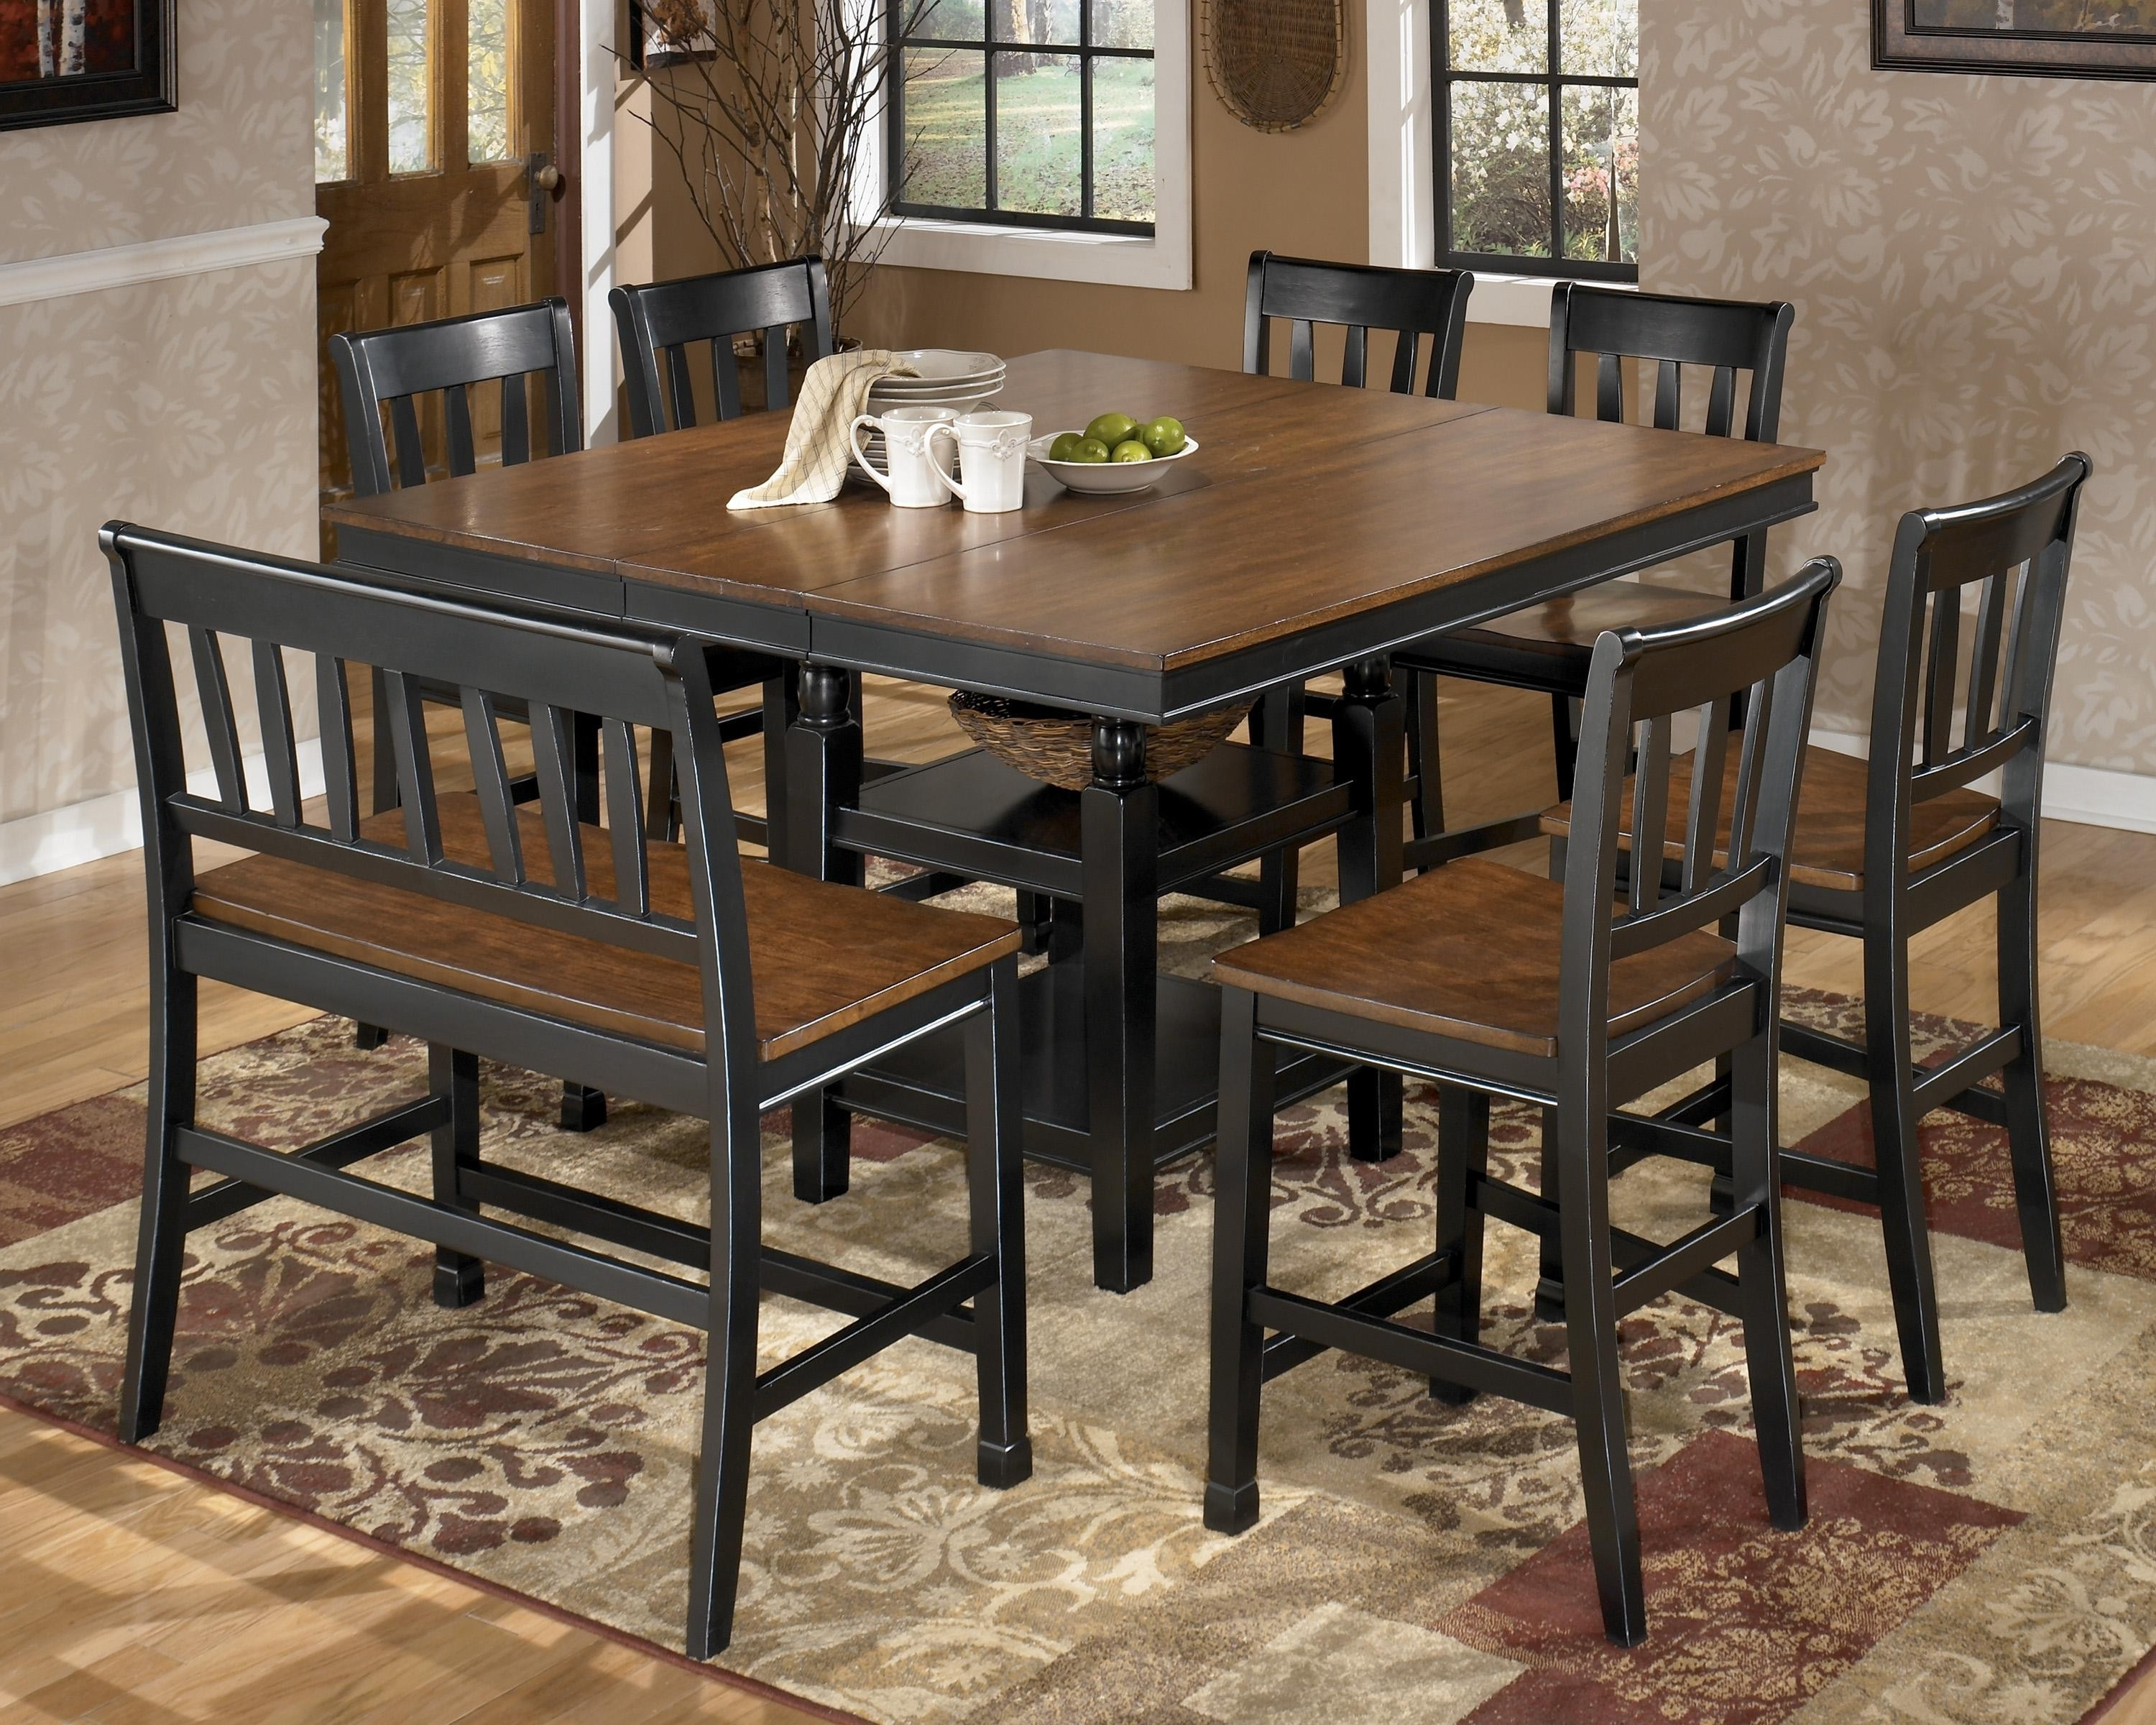 Solid Oak Dining Room Table And 8 Chairs New Ashley Counter Height With Regard To Well Liked Oak Dining Tables And 8 Chairs (View 22 of 25)